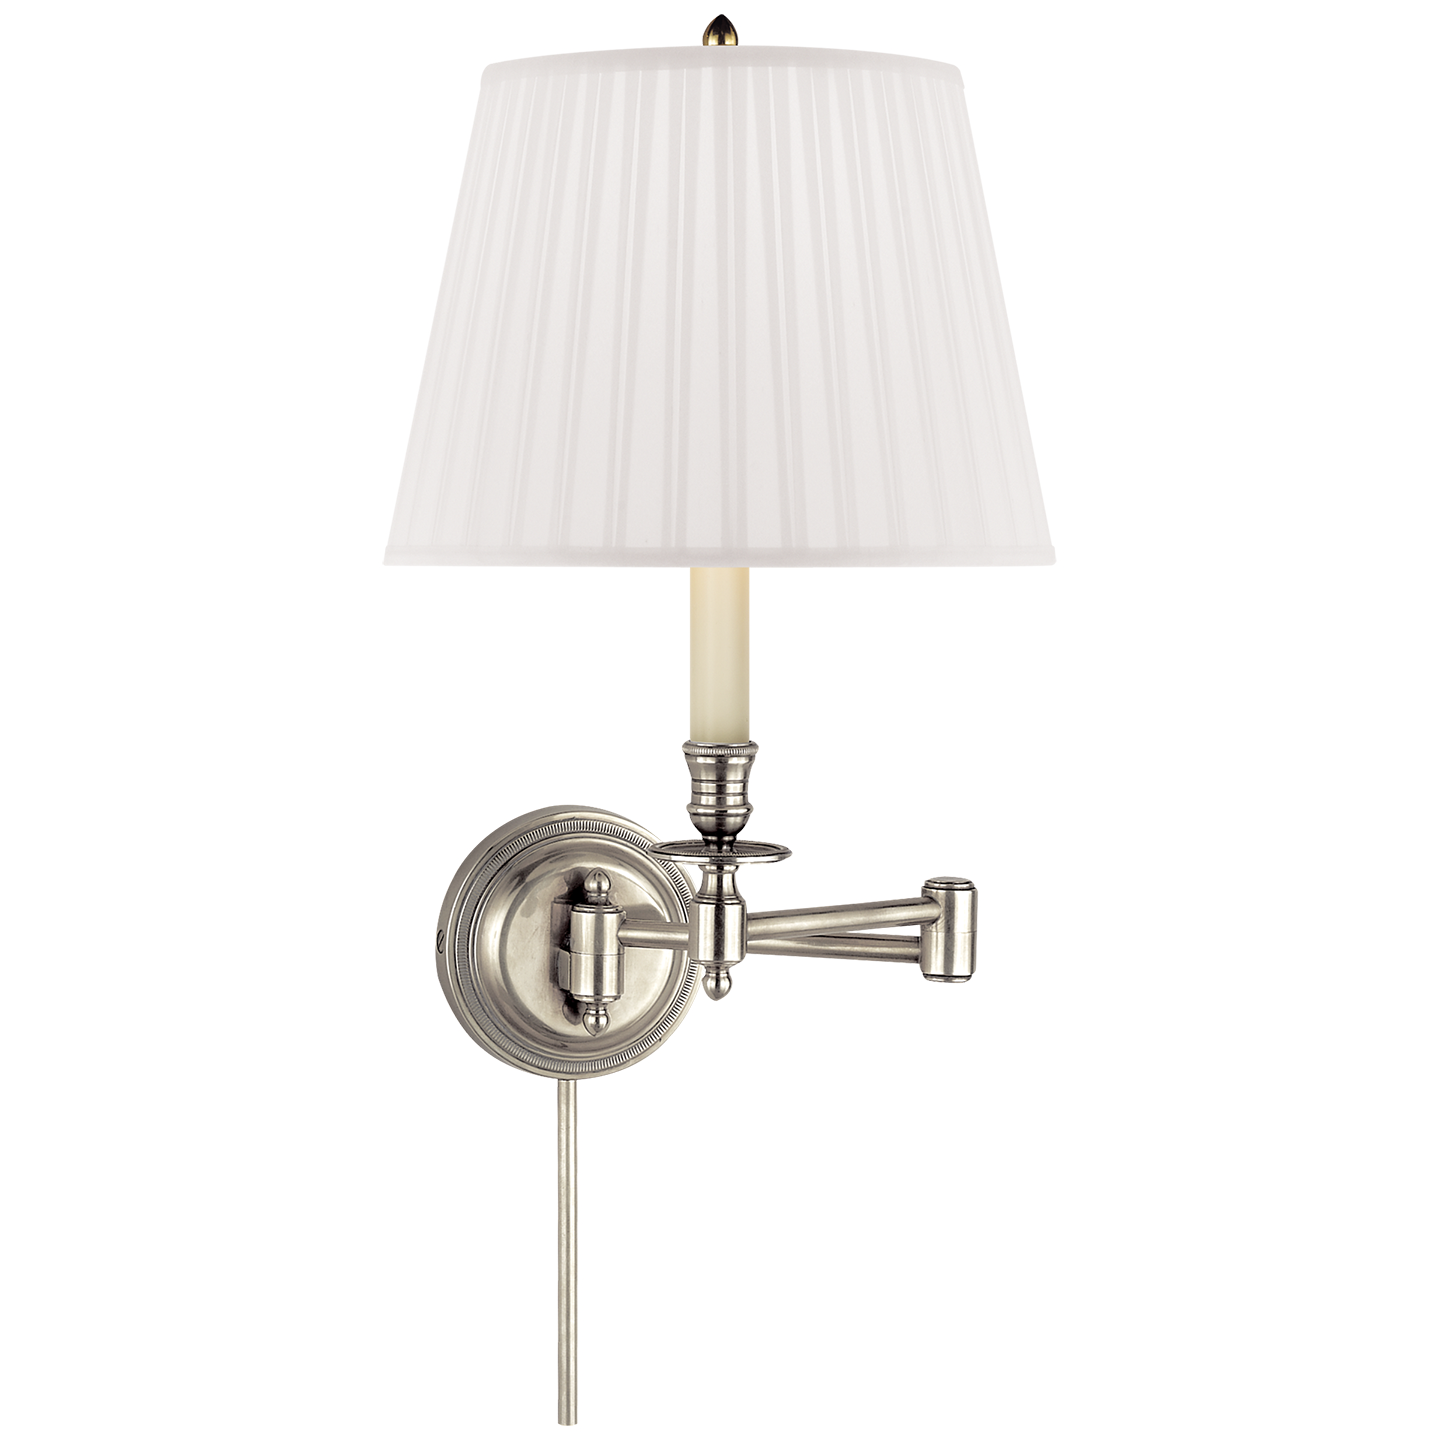 Stick On Wall Lamp One Light Swing Arm Wall Lamp